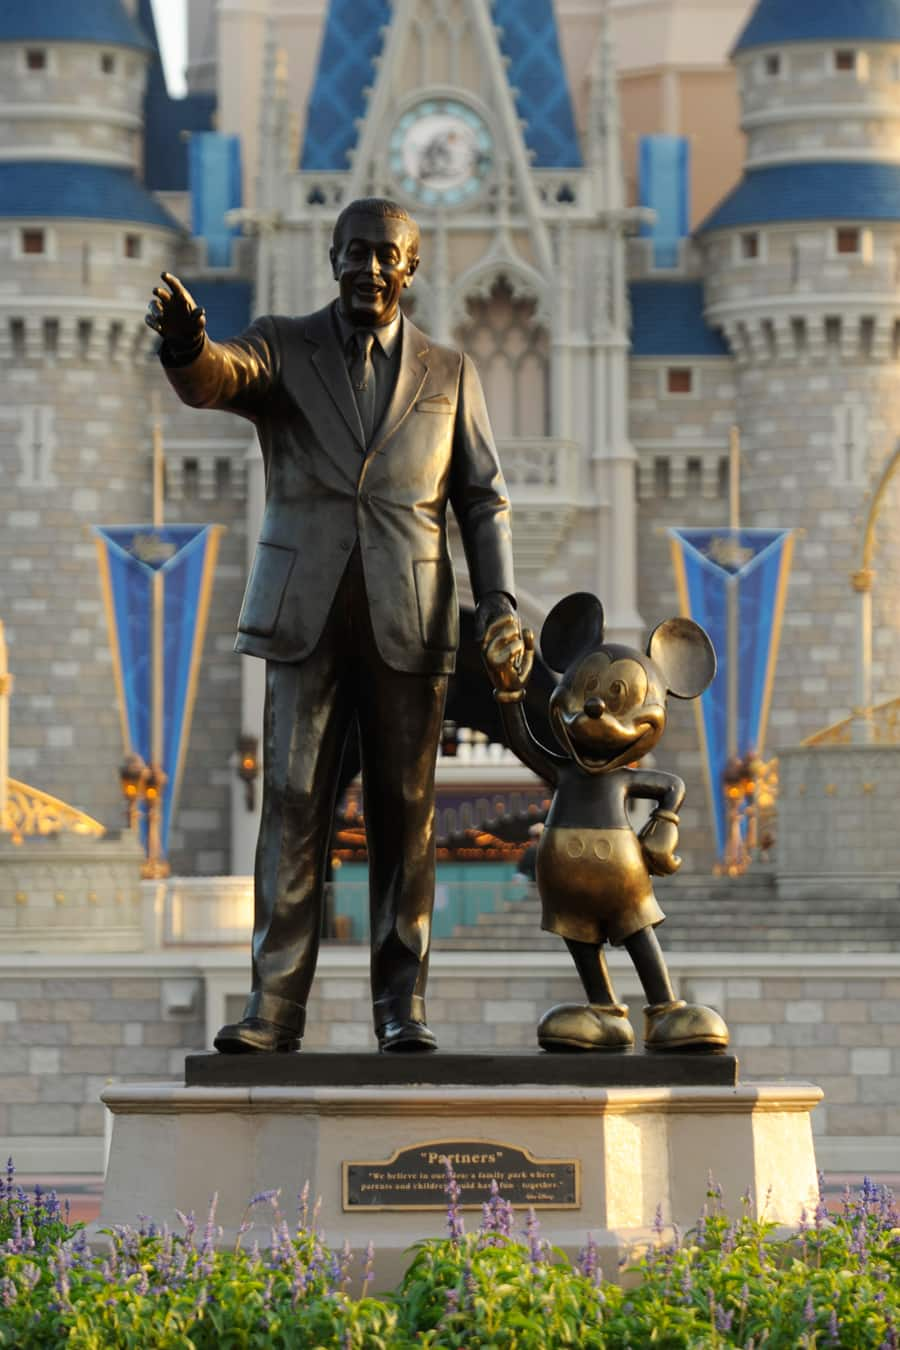 Five Fun Facts About The Partners Statue At Magic Kingdom Park